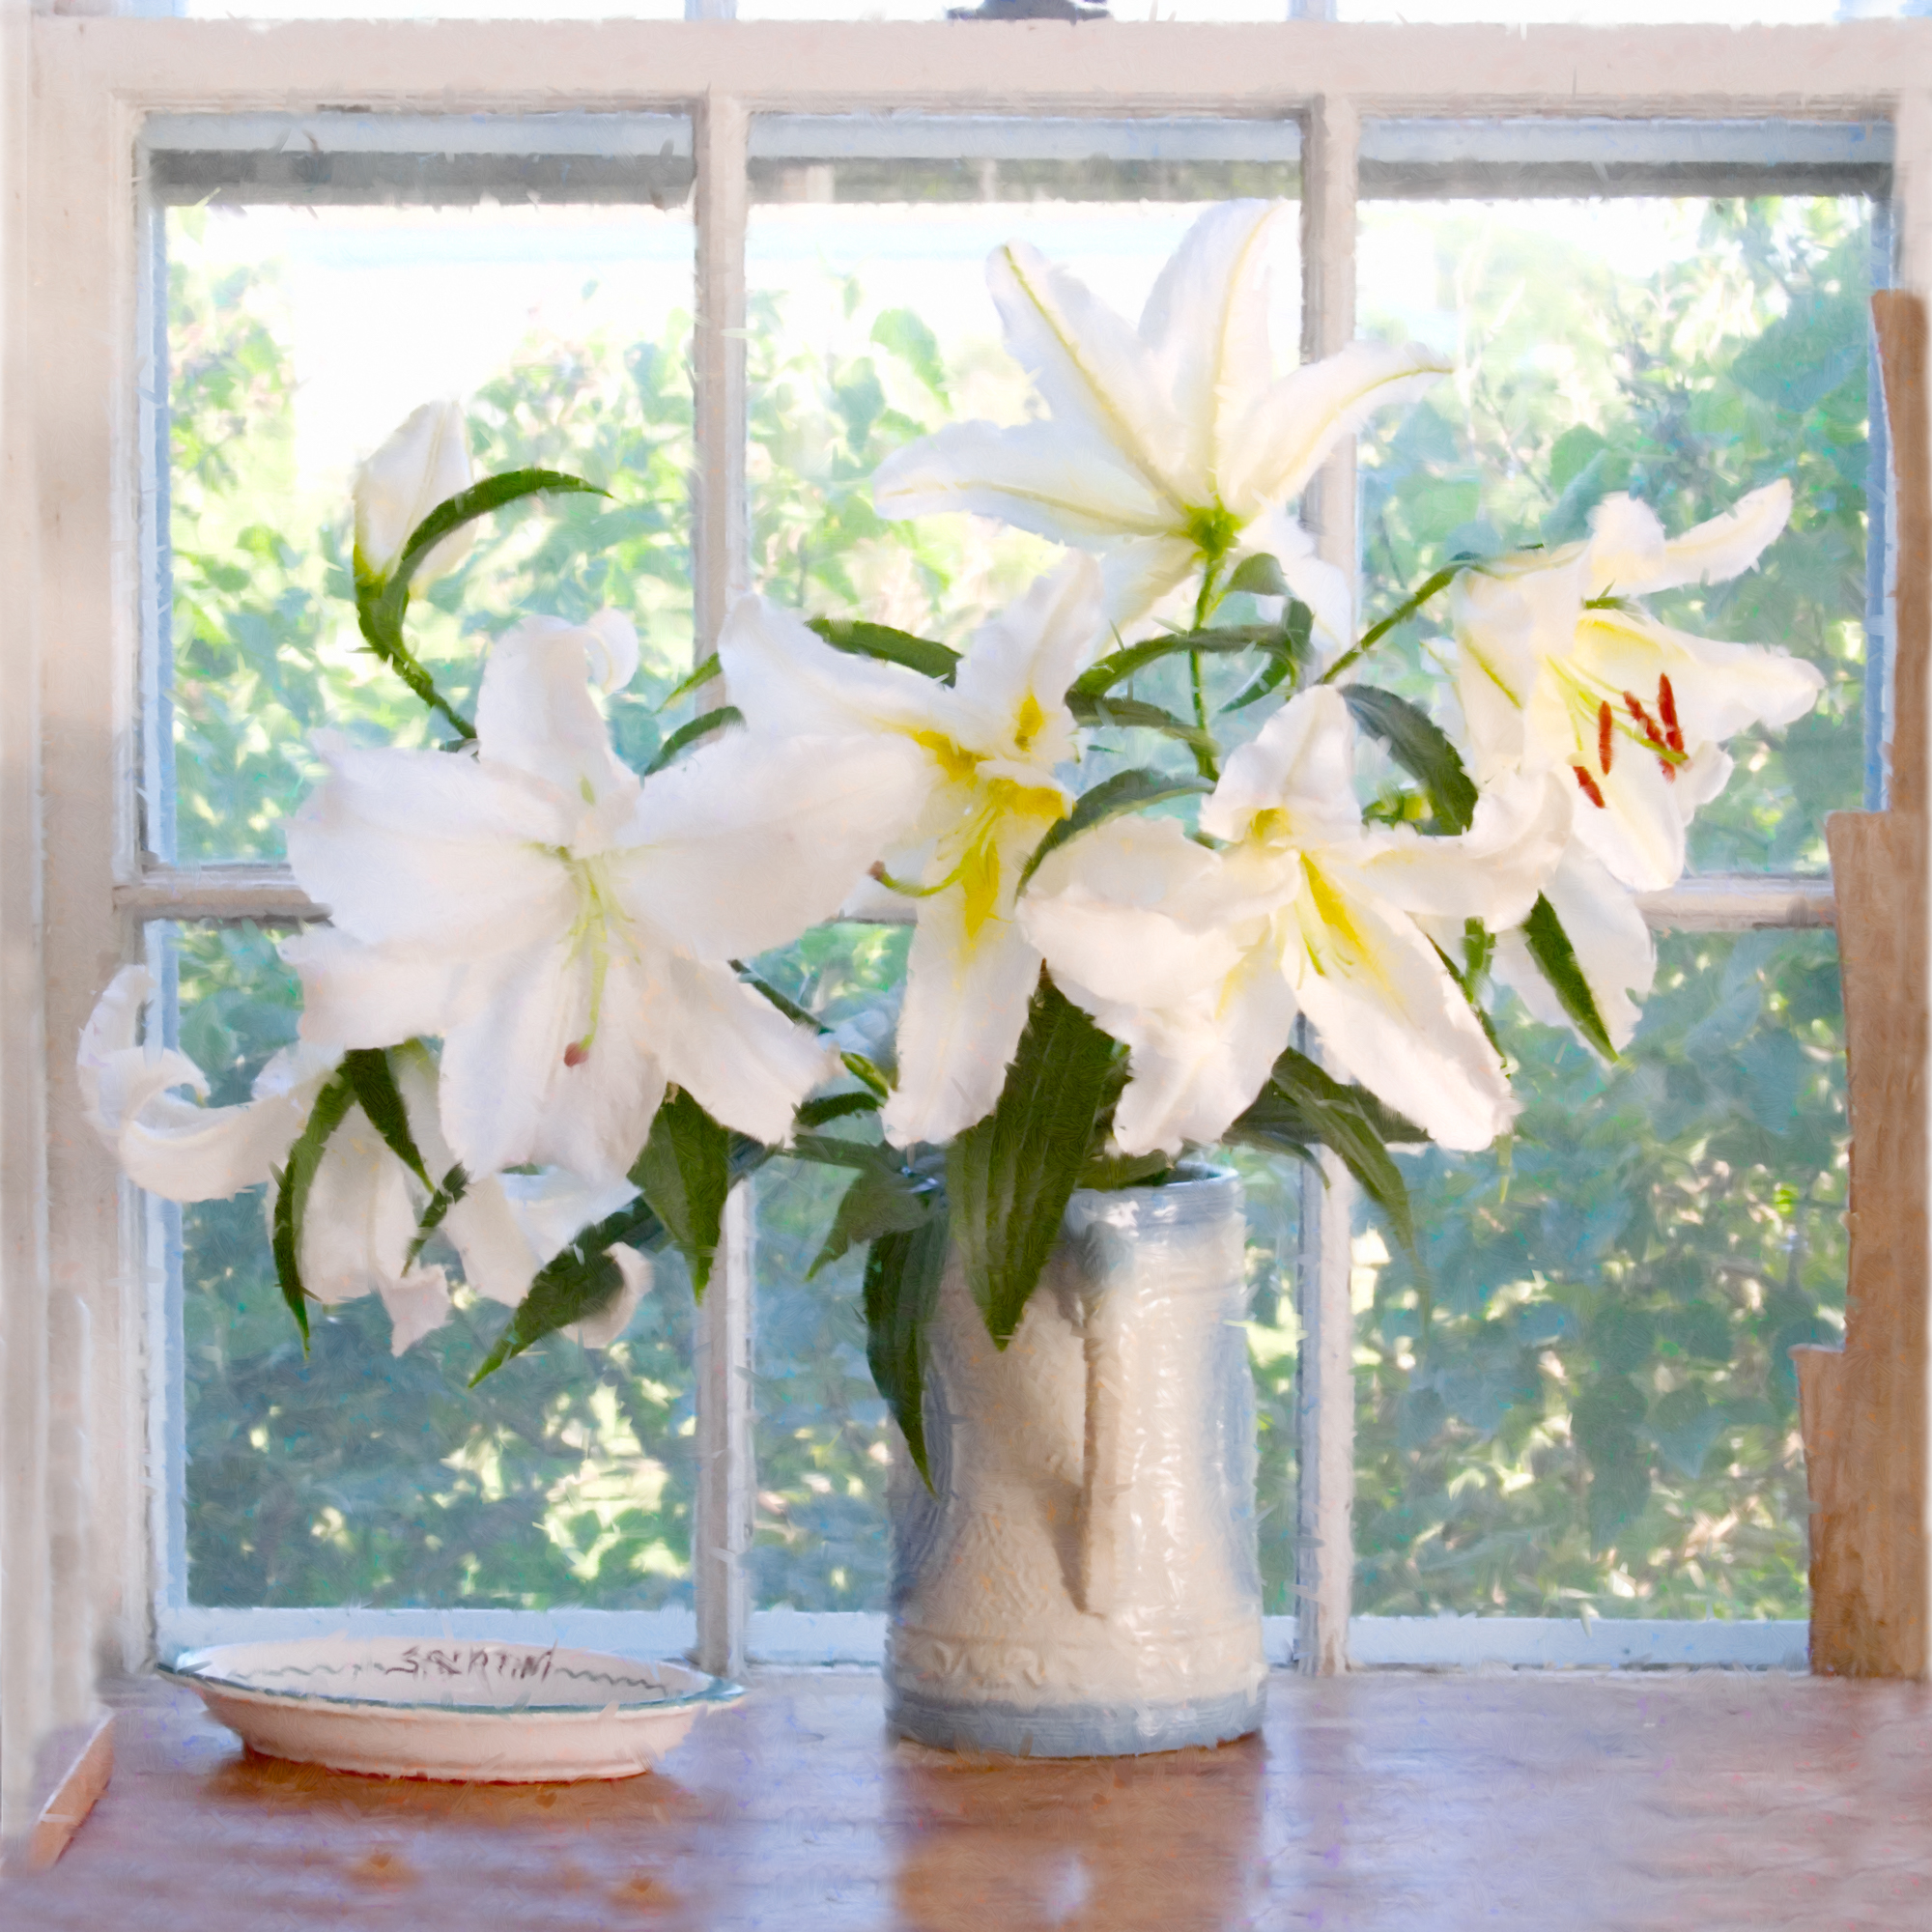 elizabeth-fenwick-photography-painterly-lilly-nantucket-flowers-.jpg